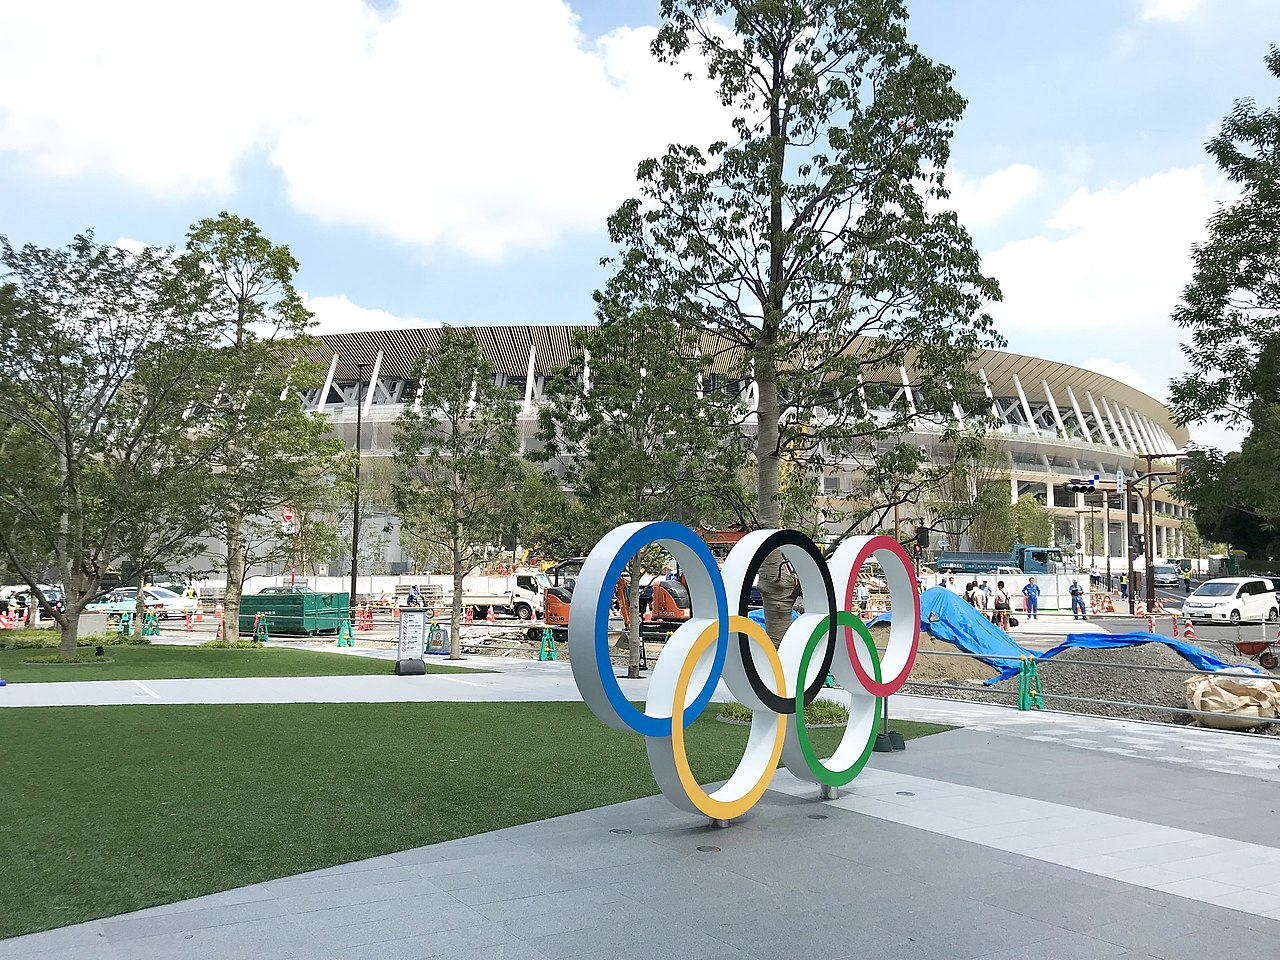 New National Stadium, site of the Tokyo Olympics opening and closing ceremonies, as well as track and field competitions